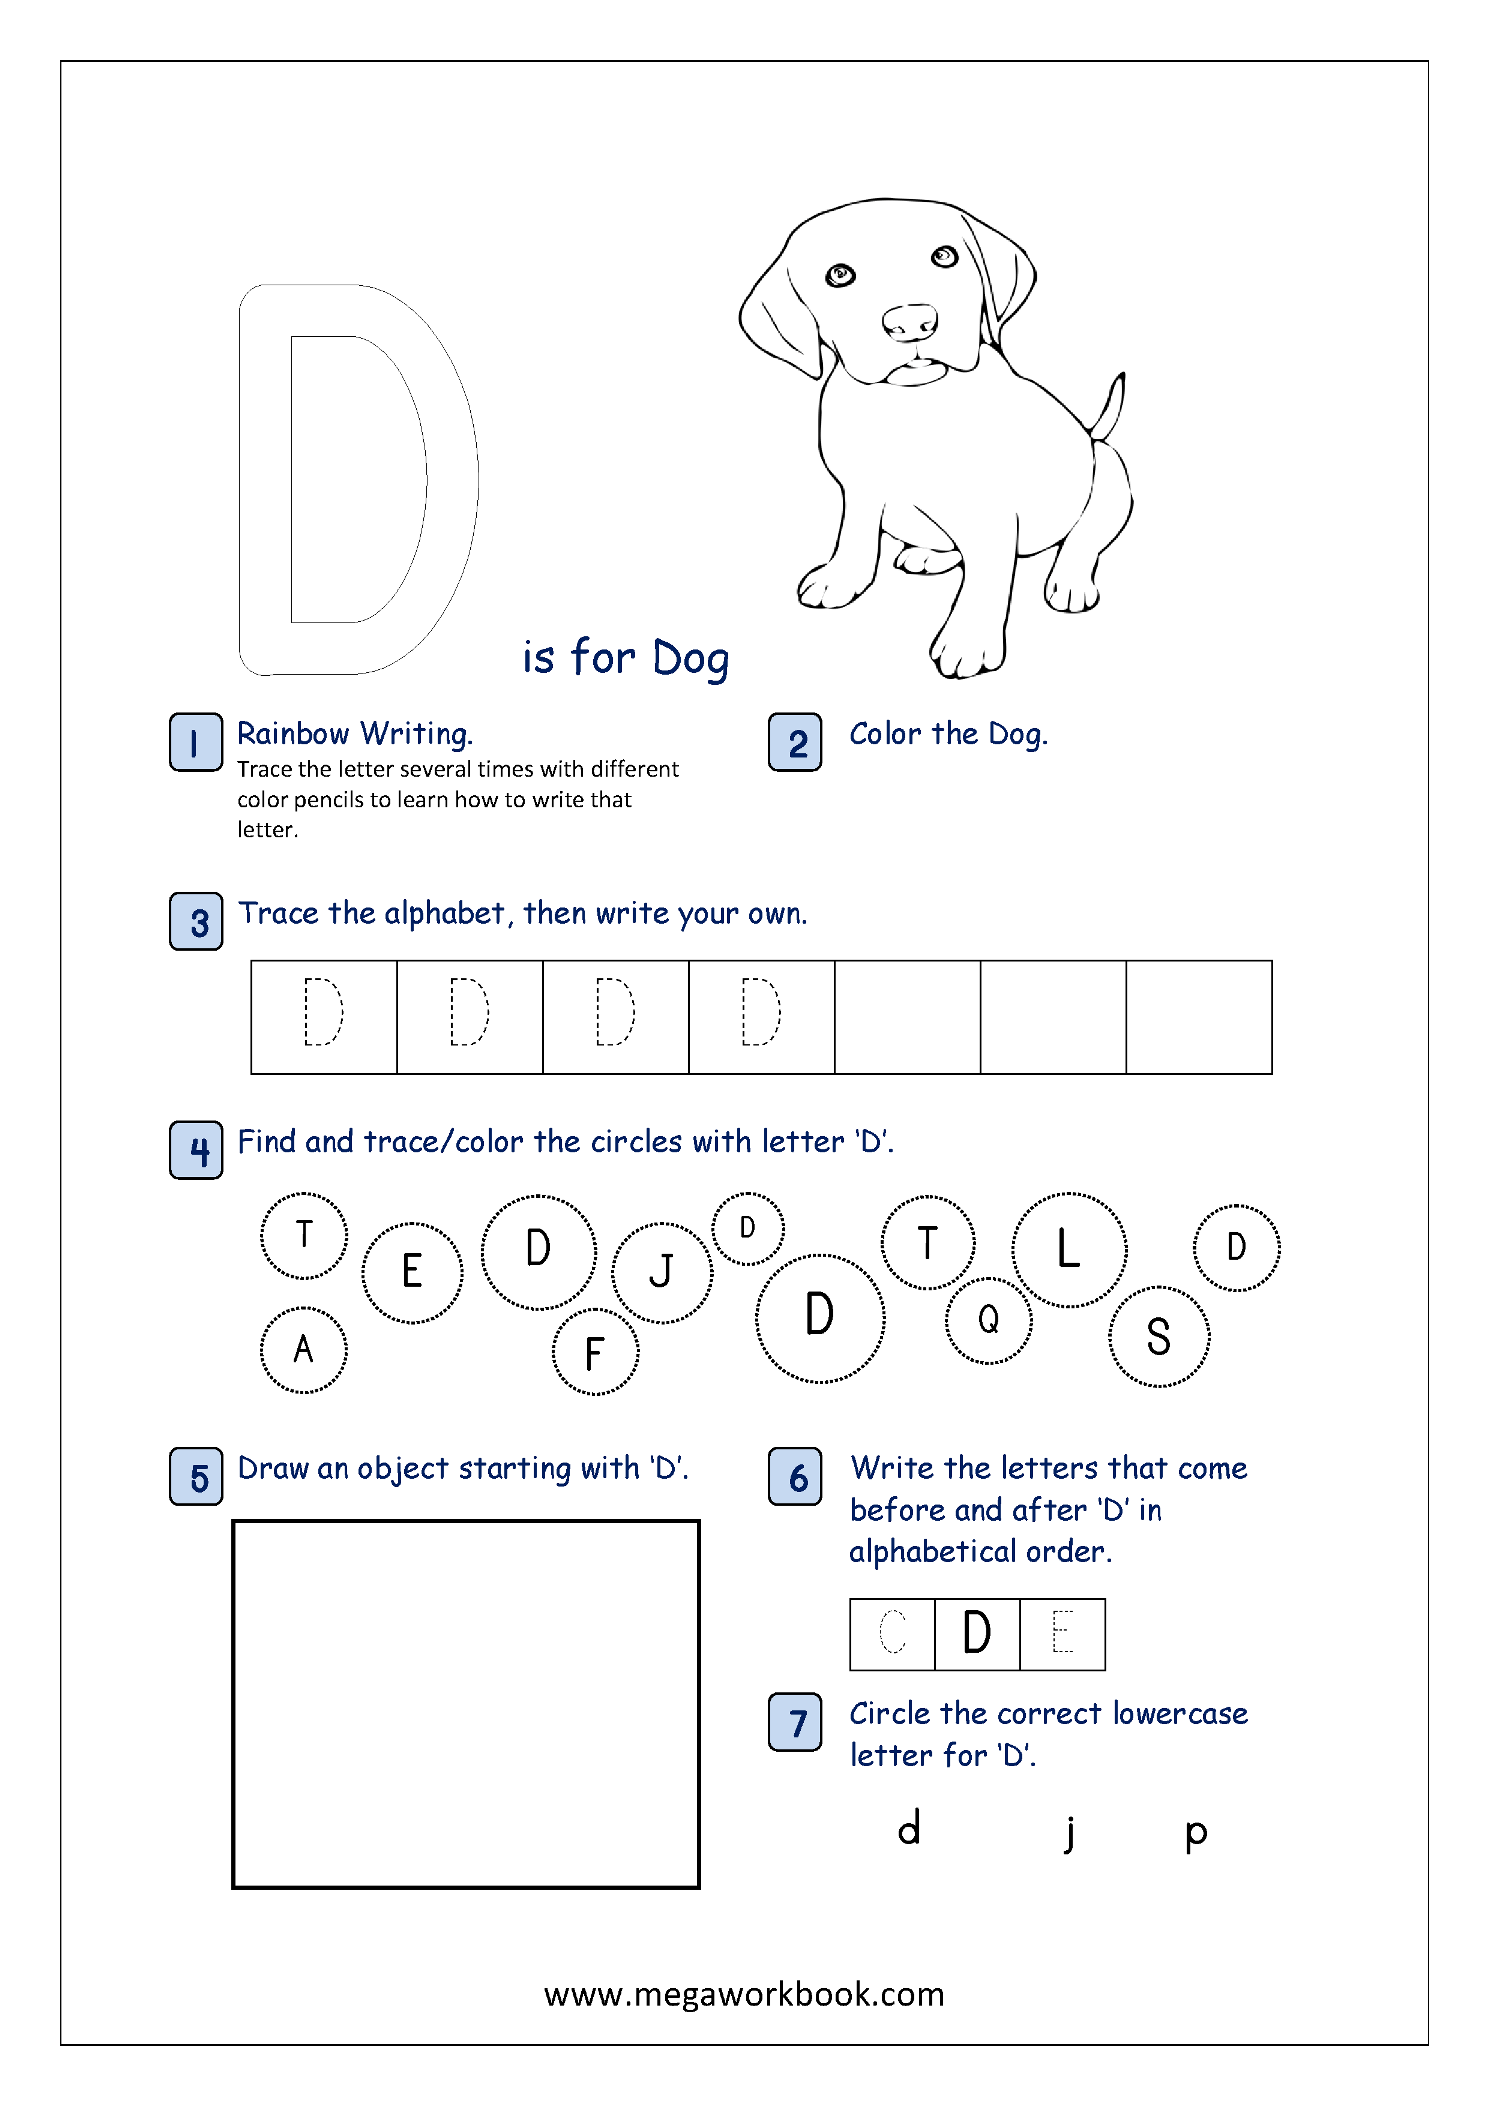 Free Printable Alphabet Recognition Worksheets For Capital intended for Alphabet Recognition Worksheets Free